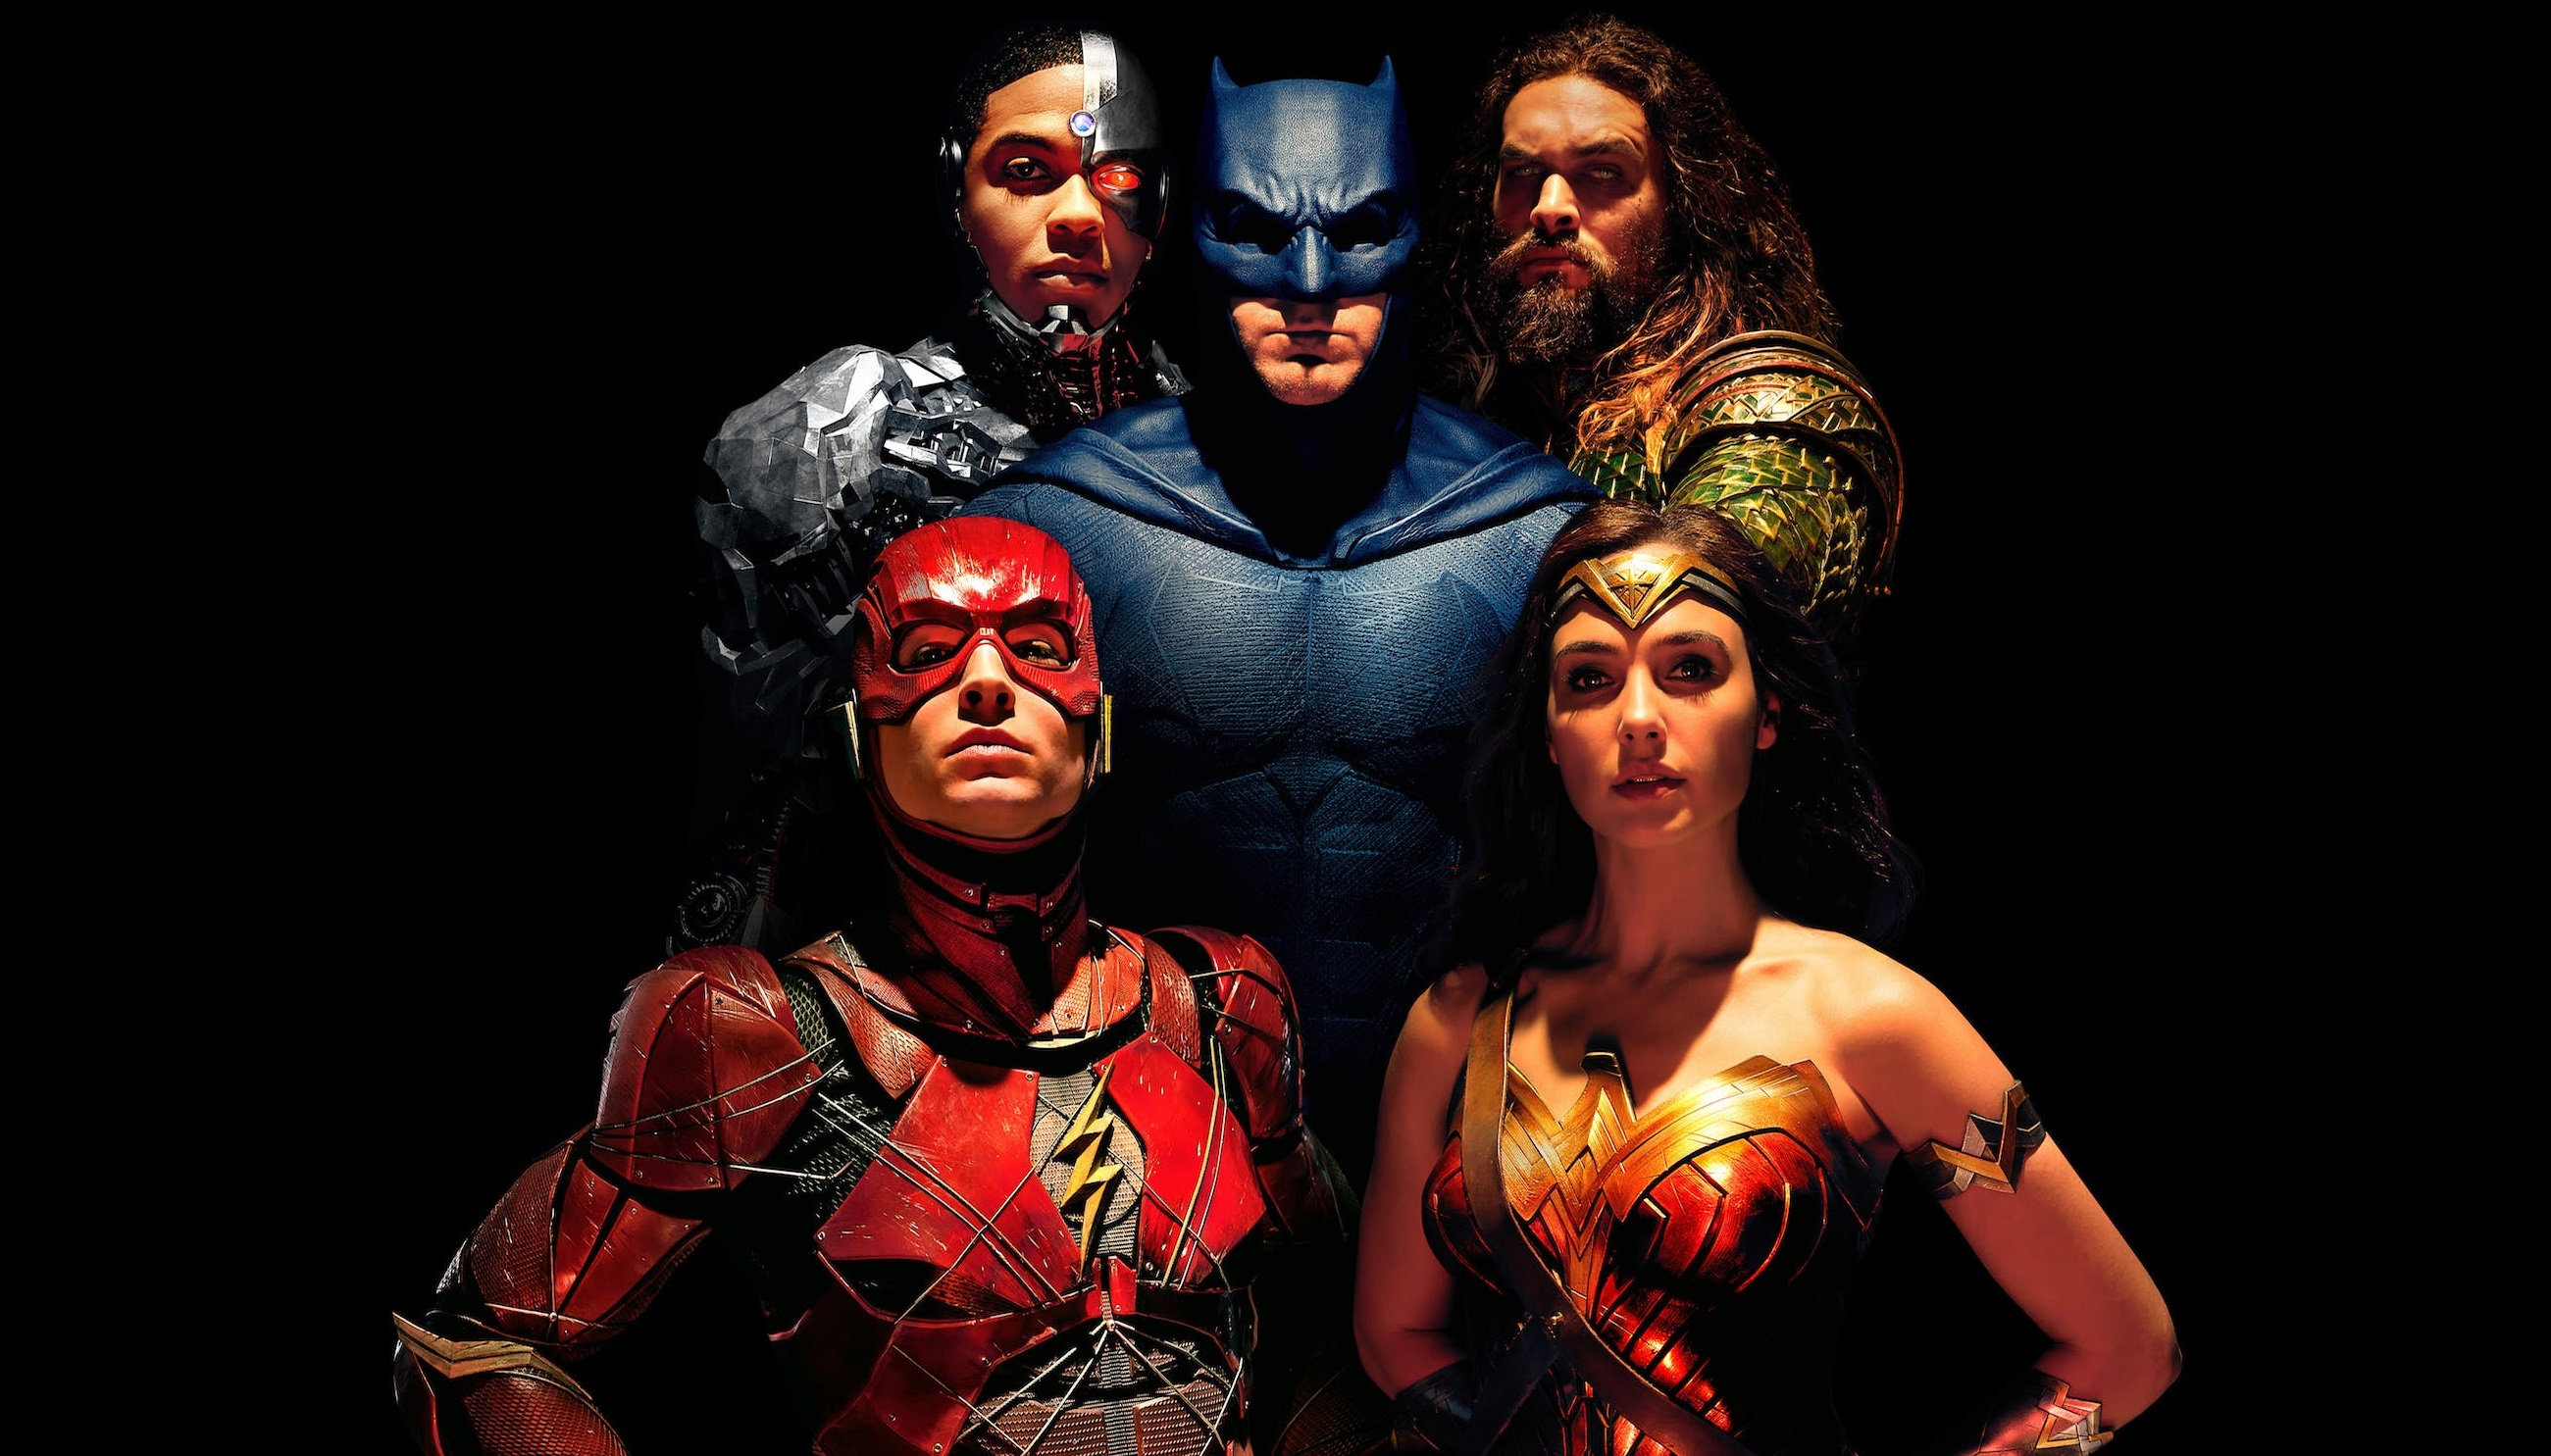 Here's What Critic Reviews Said About The Justice League: Yay or Meh?